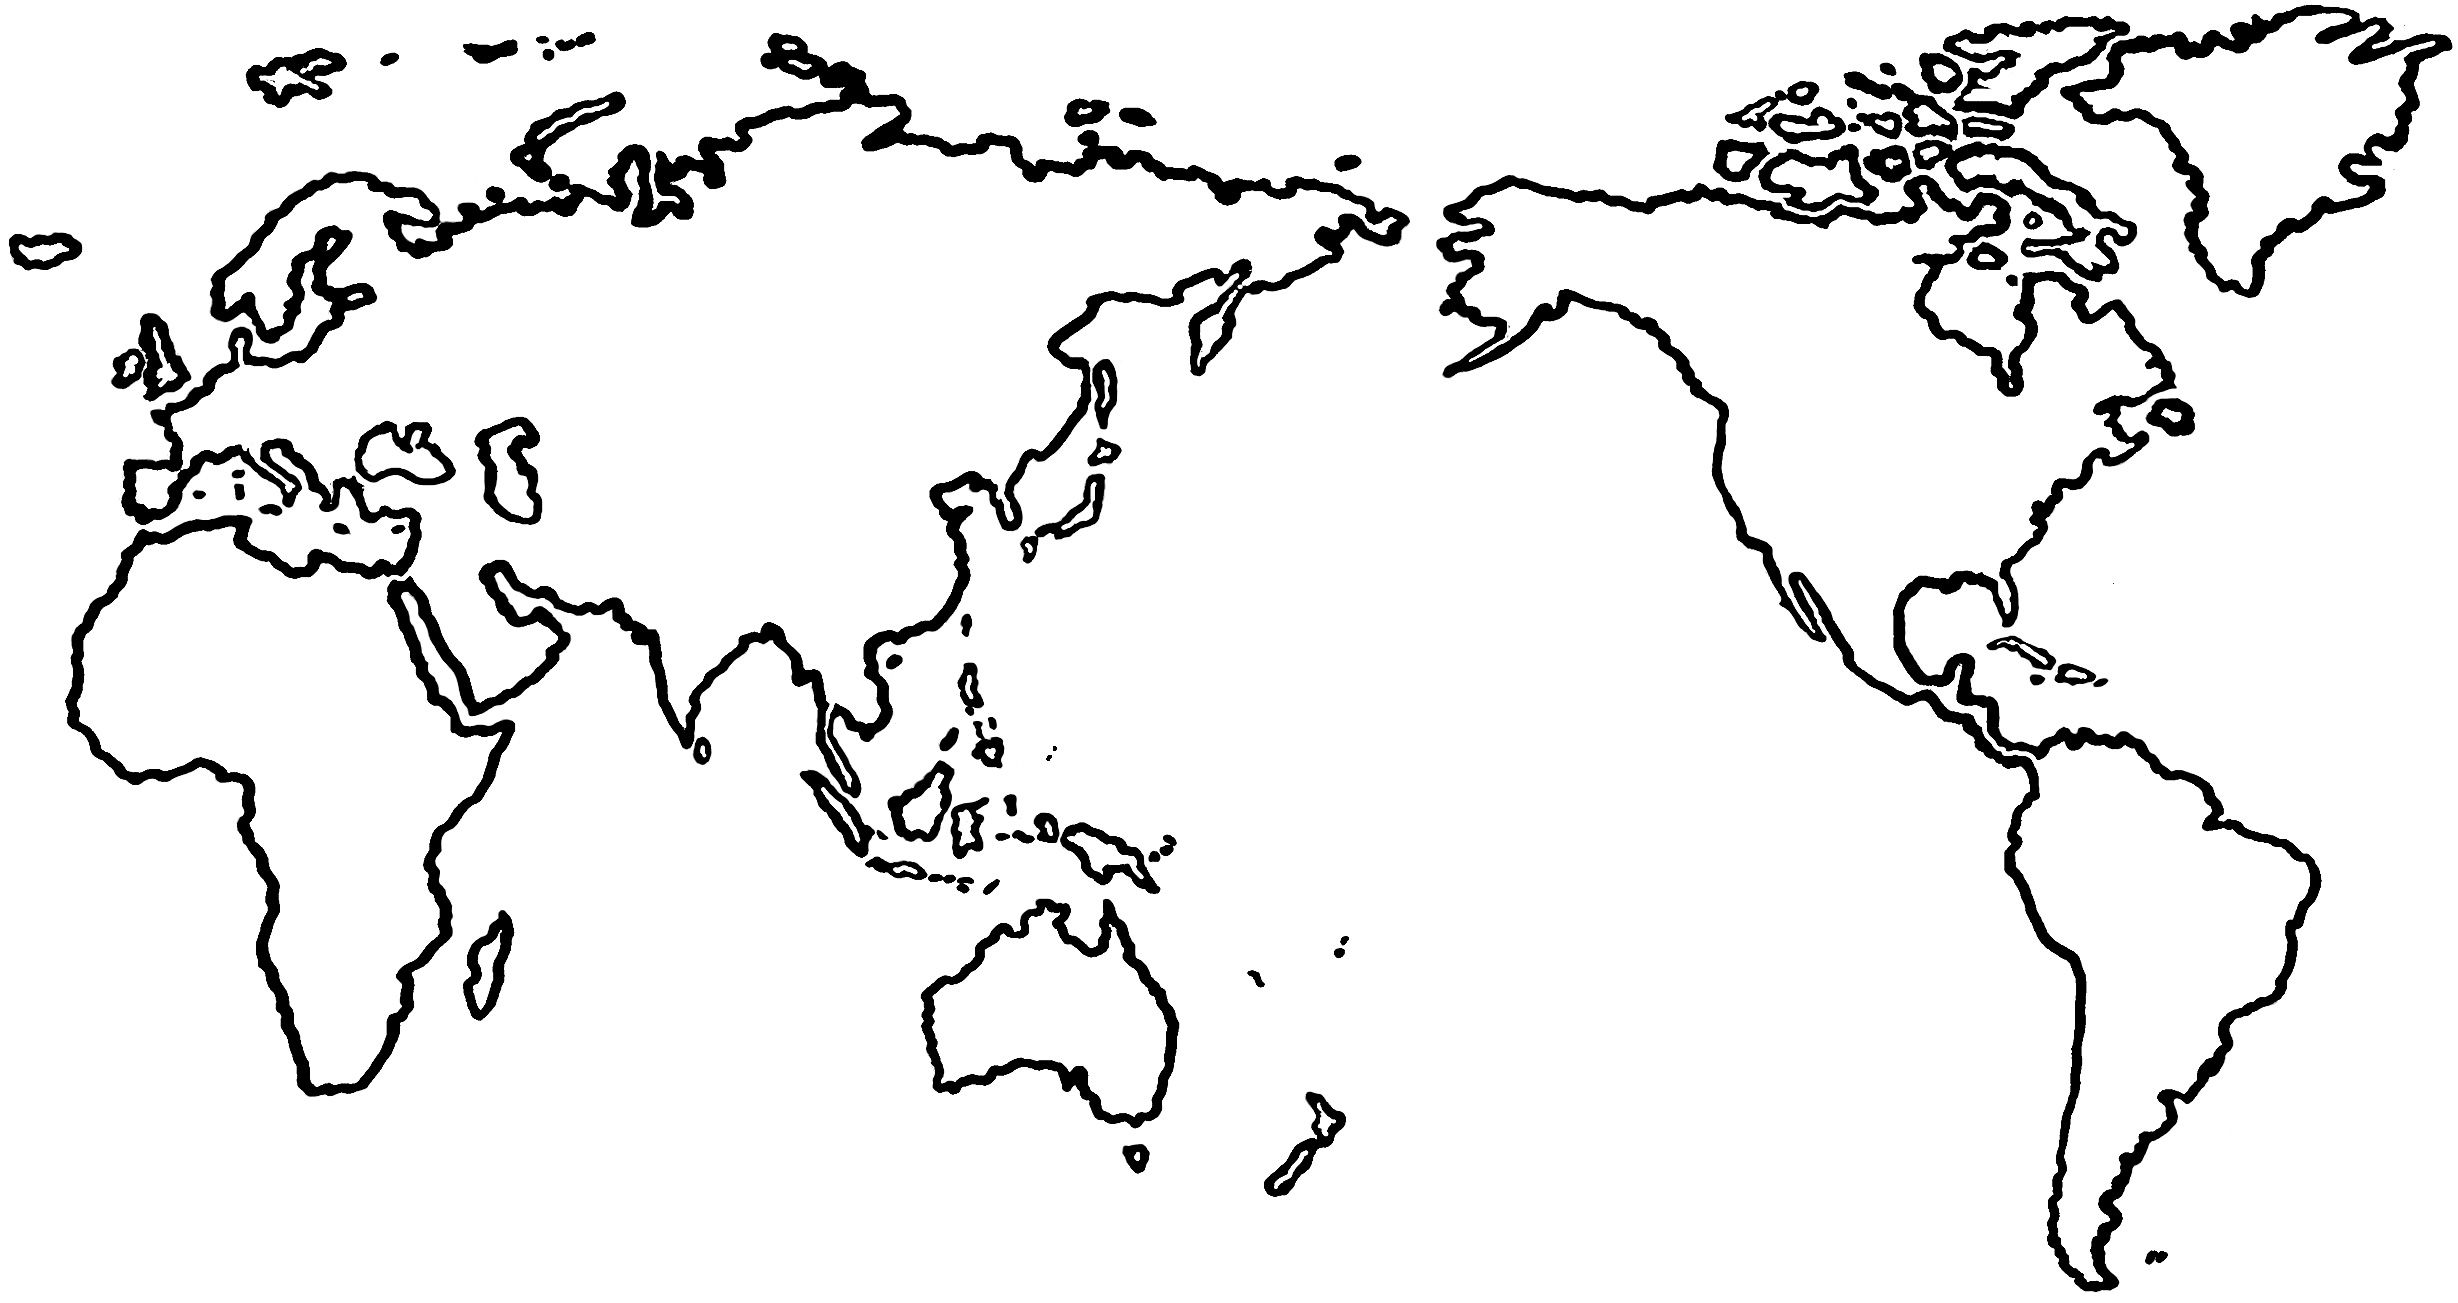 How to draw map of world open this world map template jpeg and how to draw map of world open this world map template jpeg and save it gumiabroncs